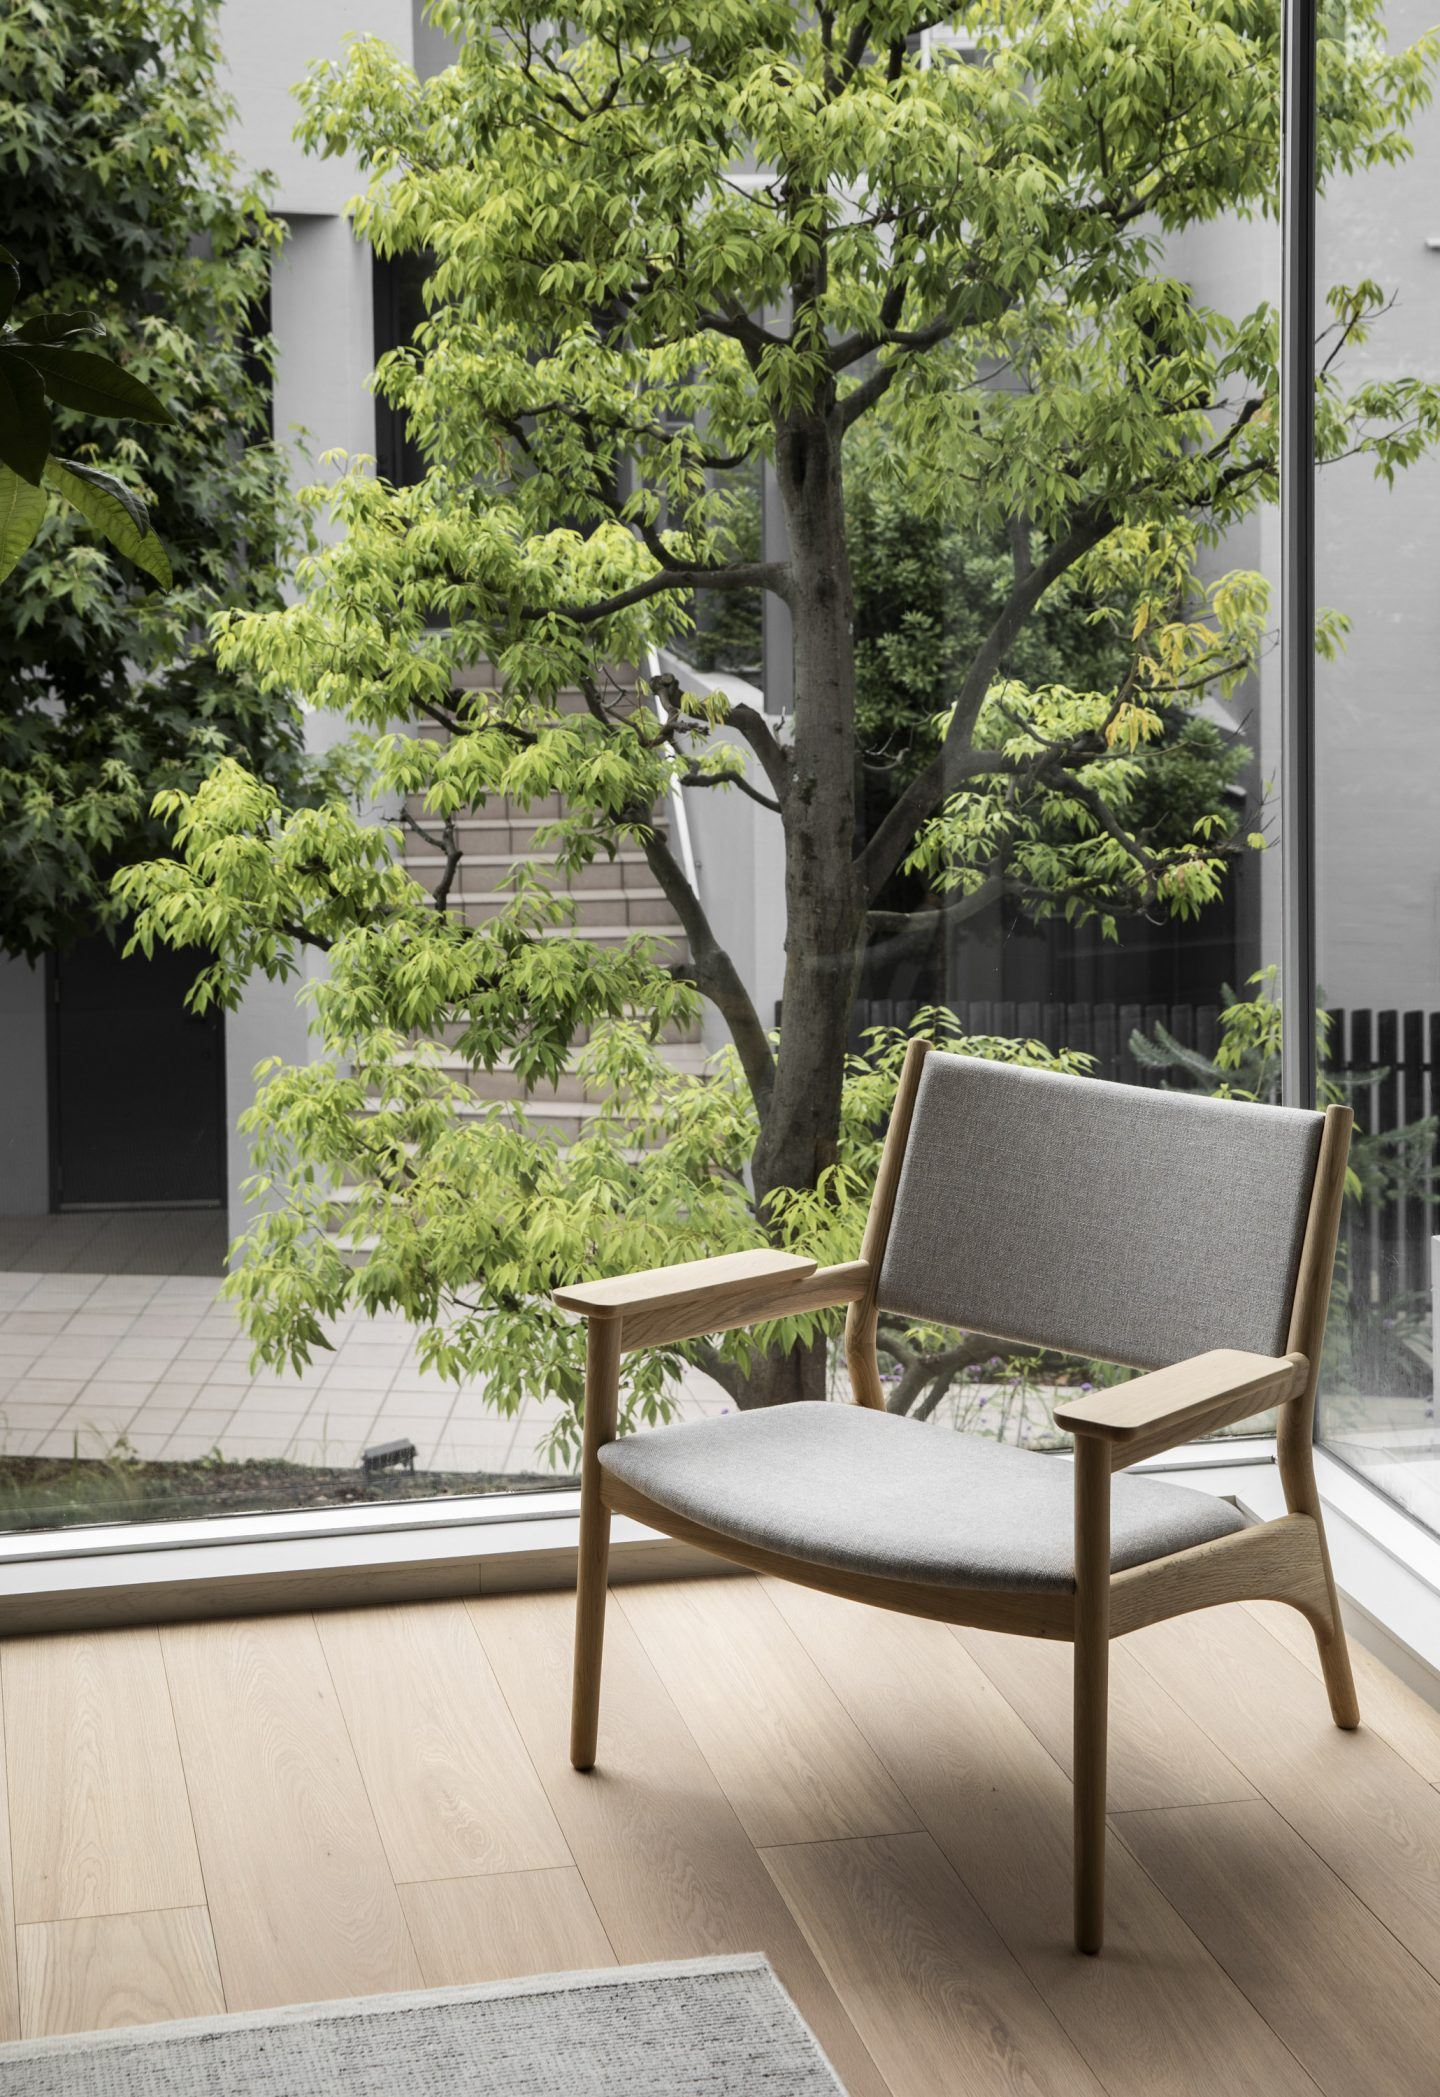 IGNANT-Design-Norm-Architects-Kinuta-Terrace-04